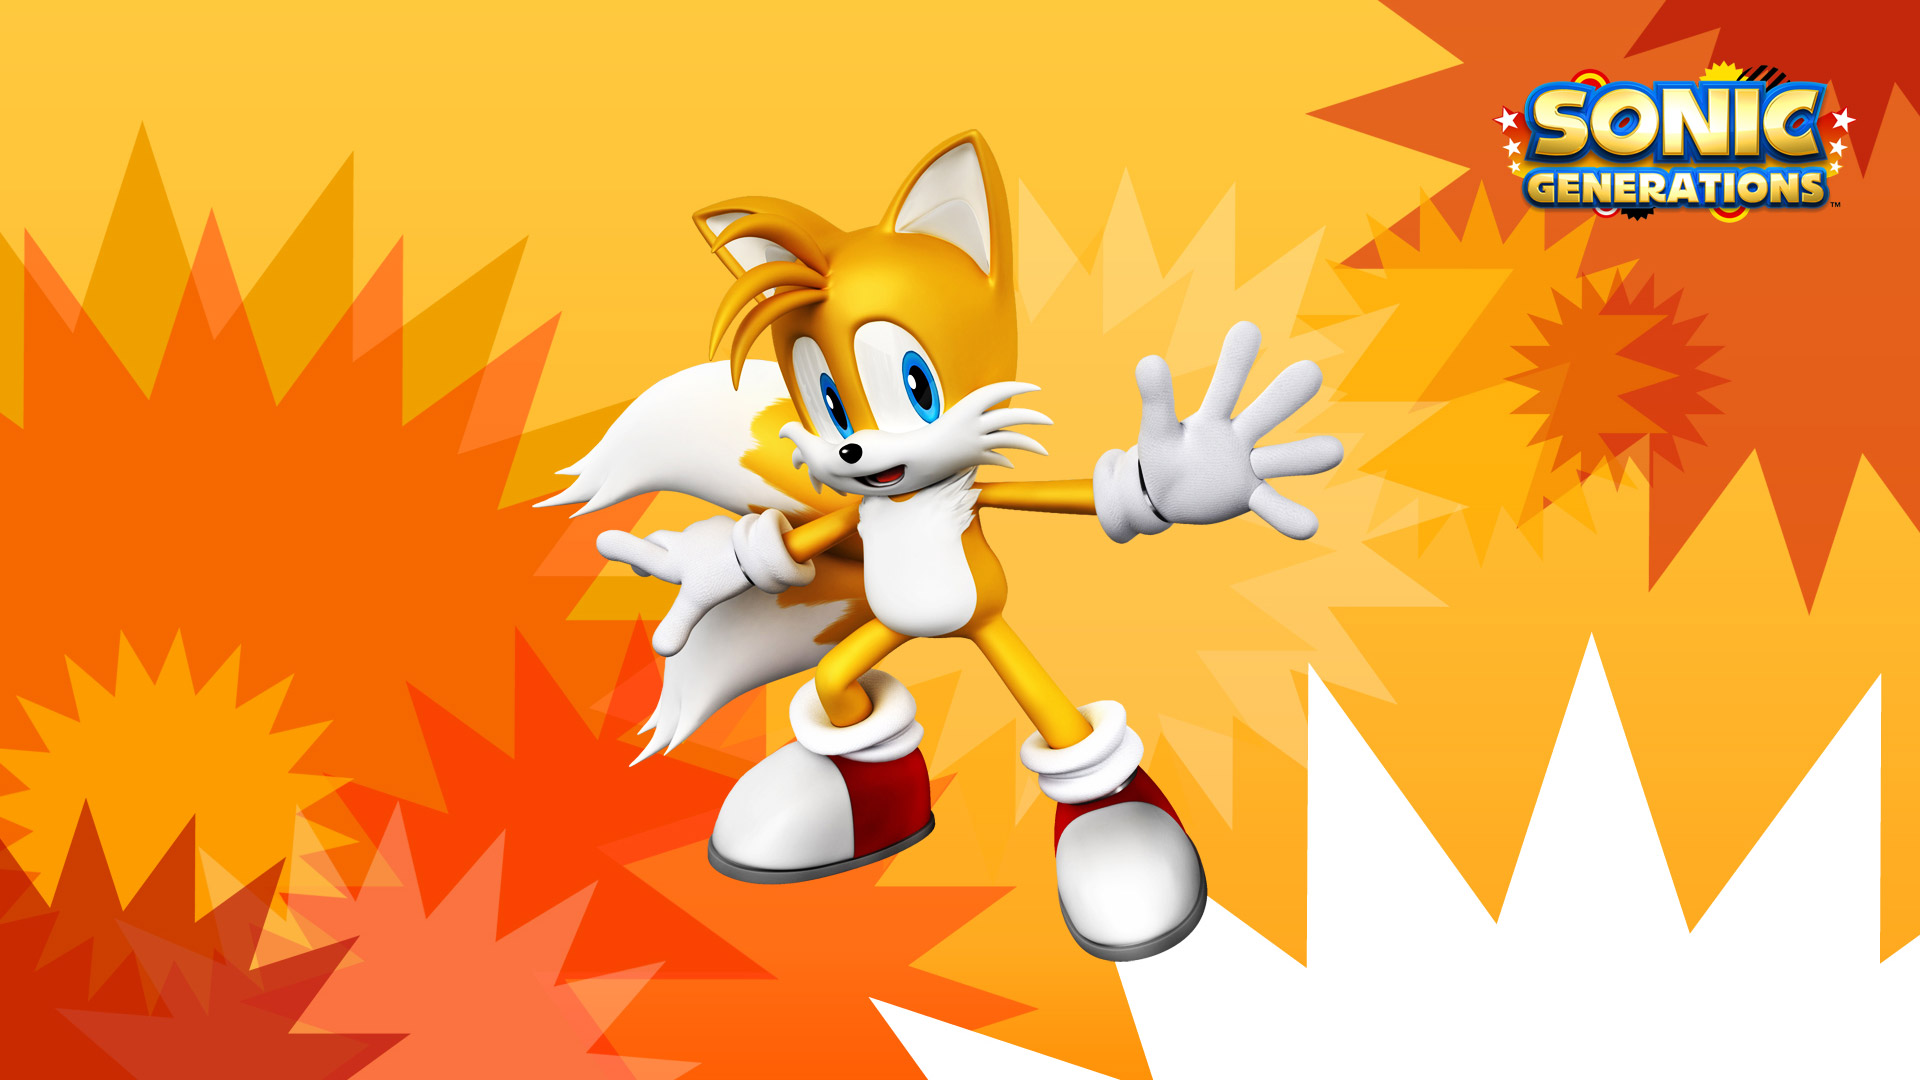 Free Sonic Generations Wallpaper in 1920x1080